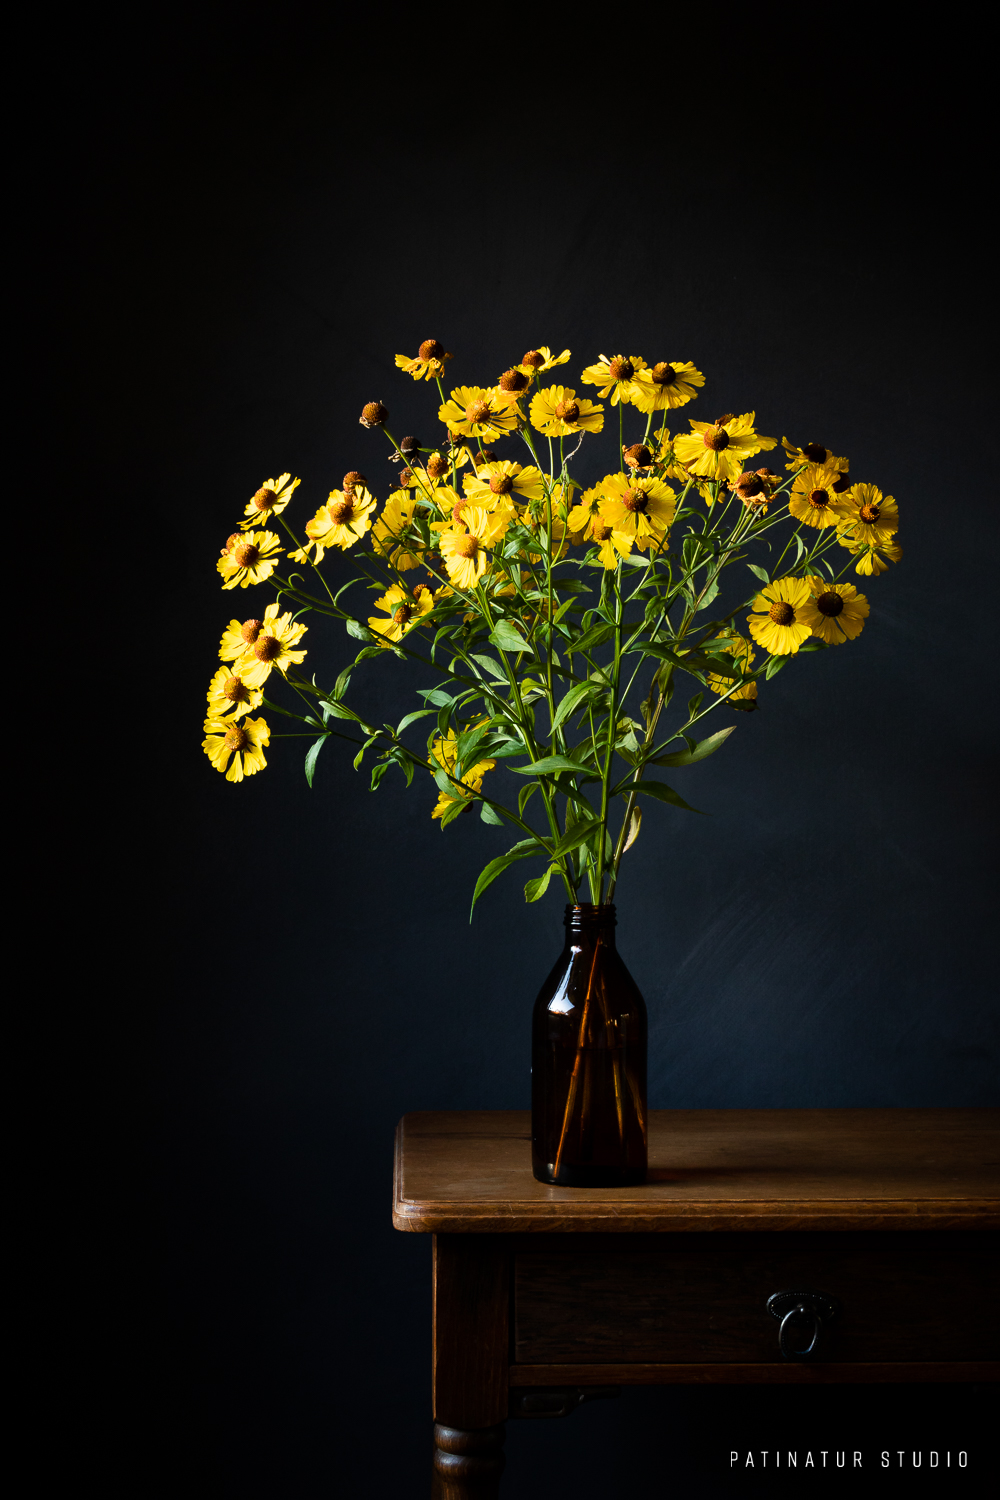 Photo art | Dark and moody still life with yellow Sneezeweed bouquet in brown glass bottle